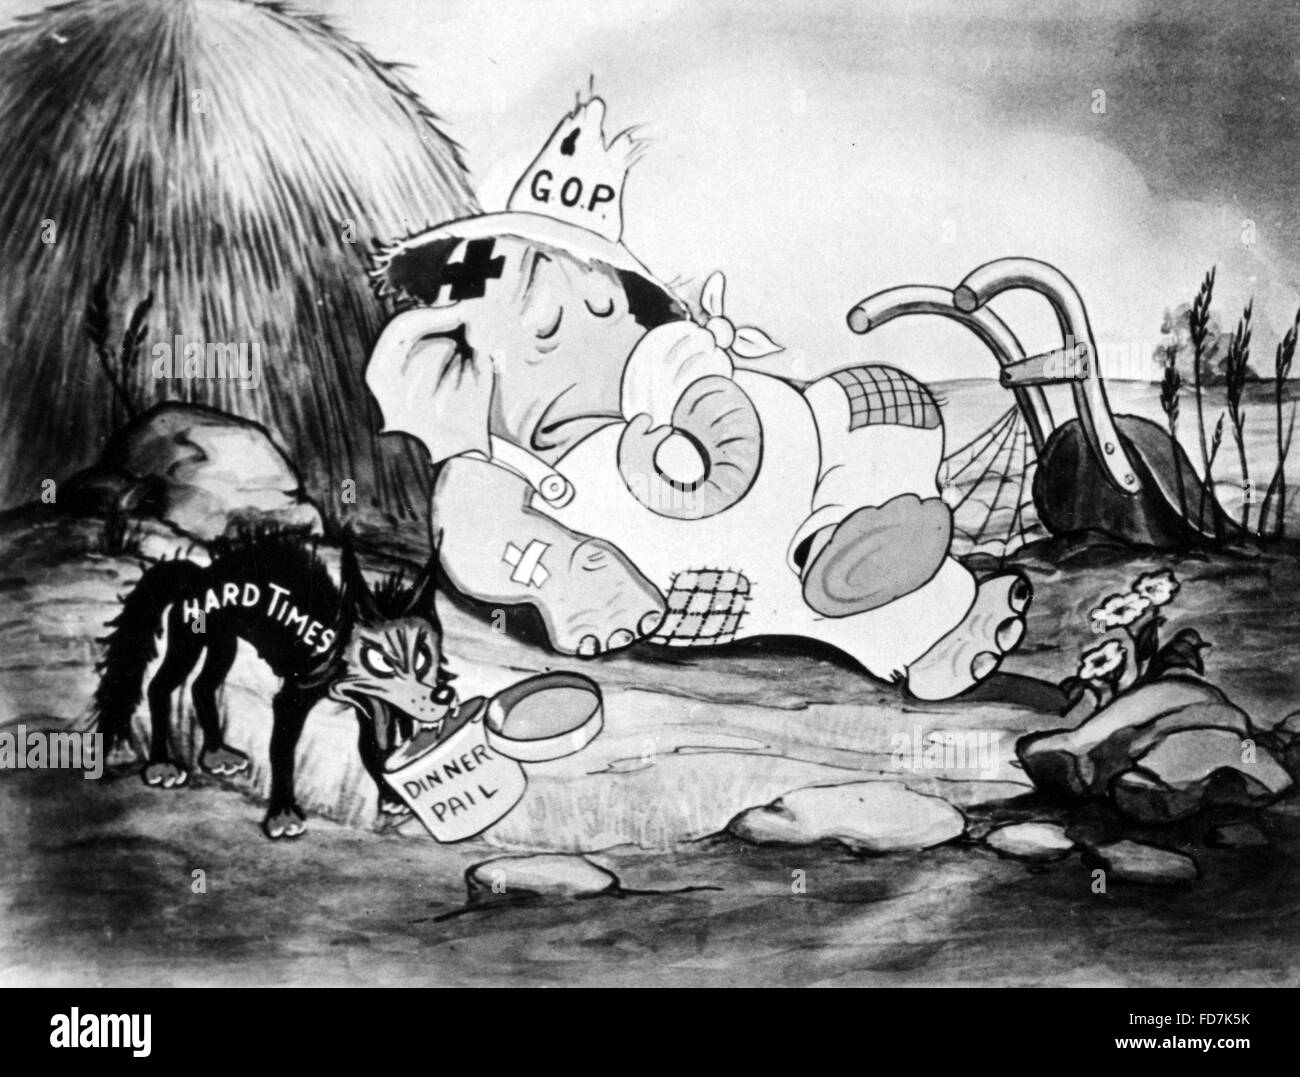 New Deal: Cartoon, 1936 - Stock Image